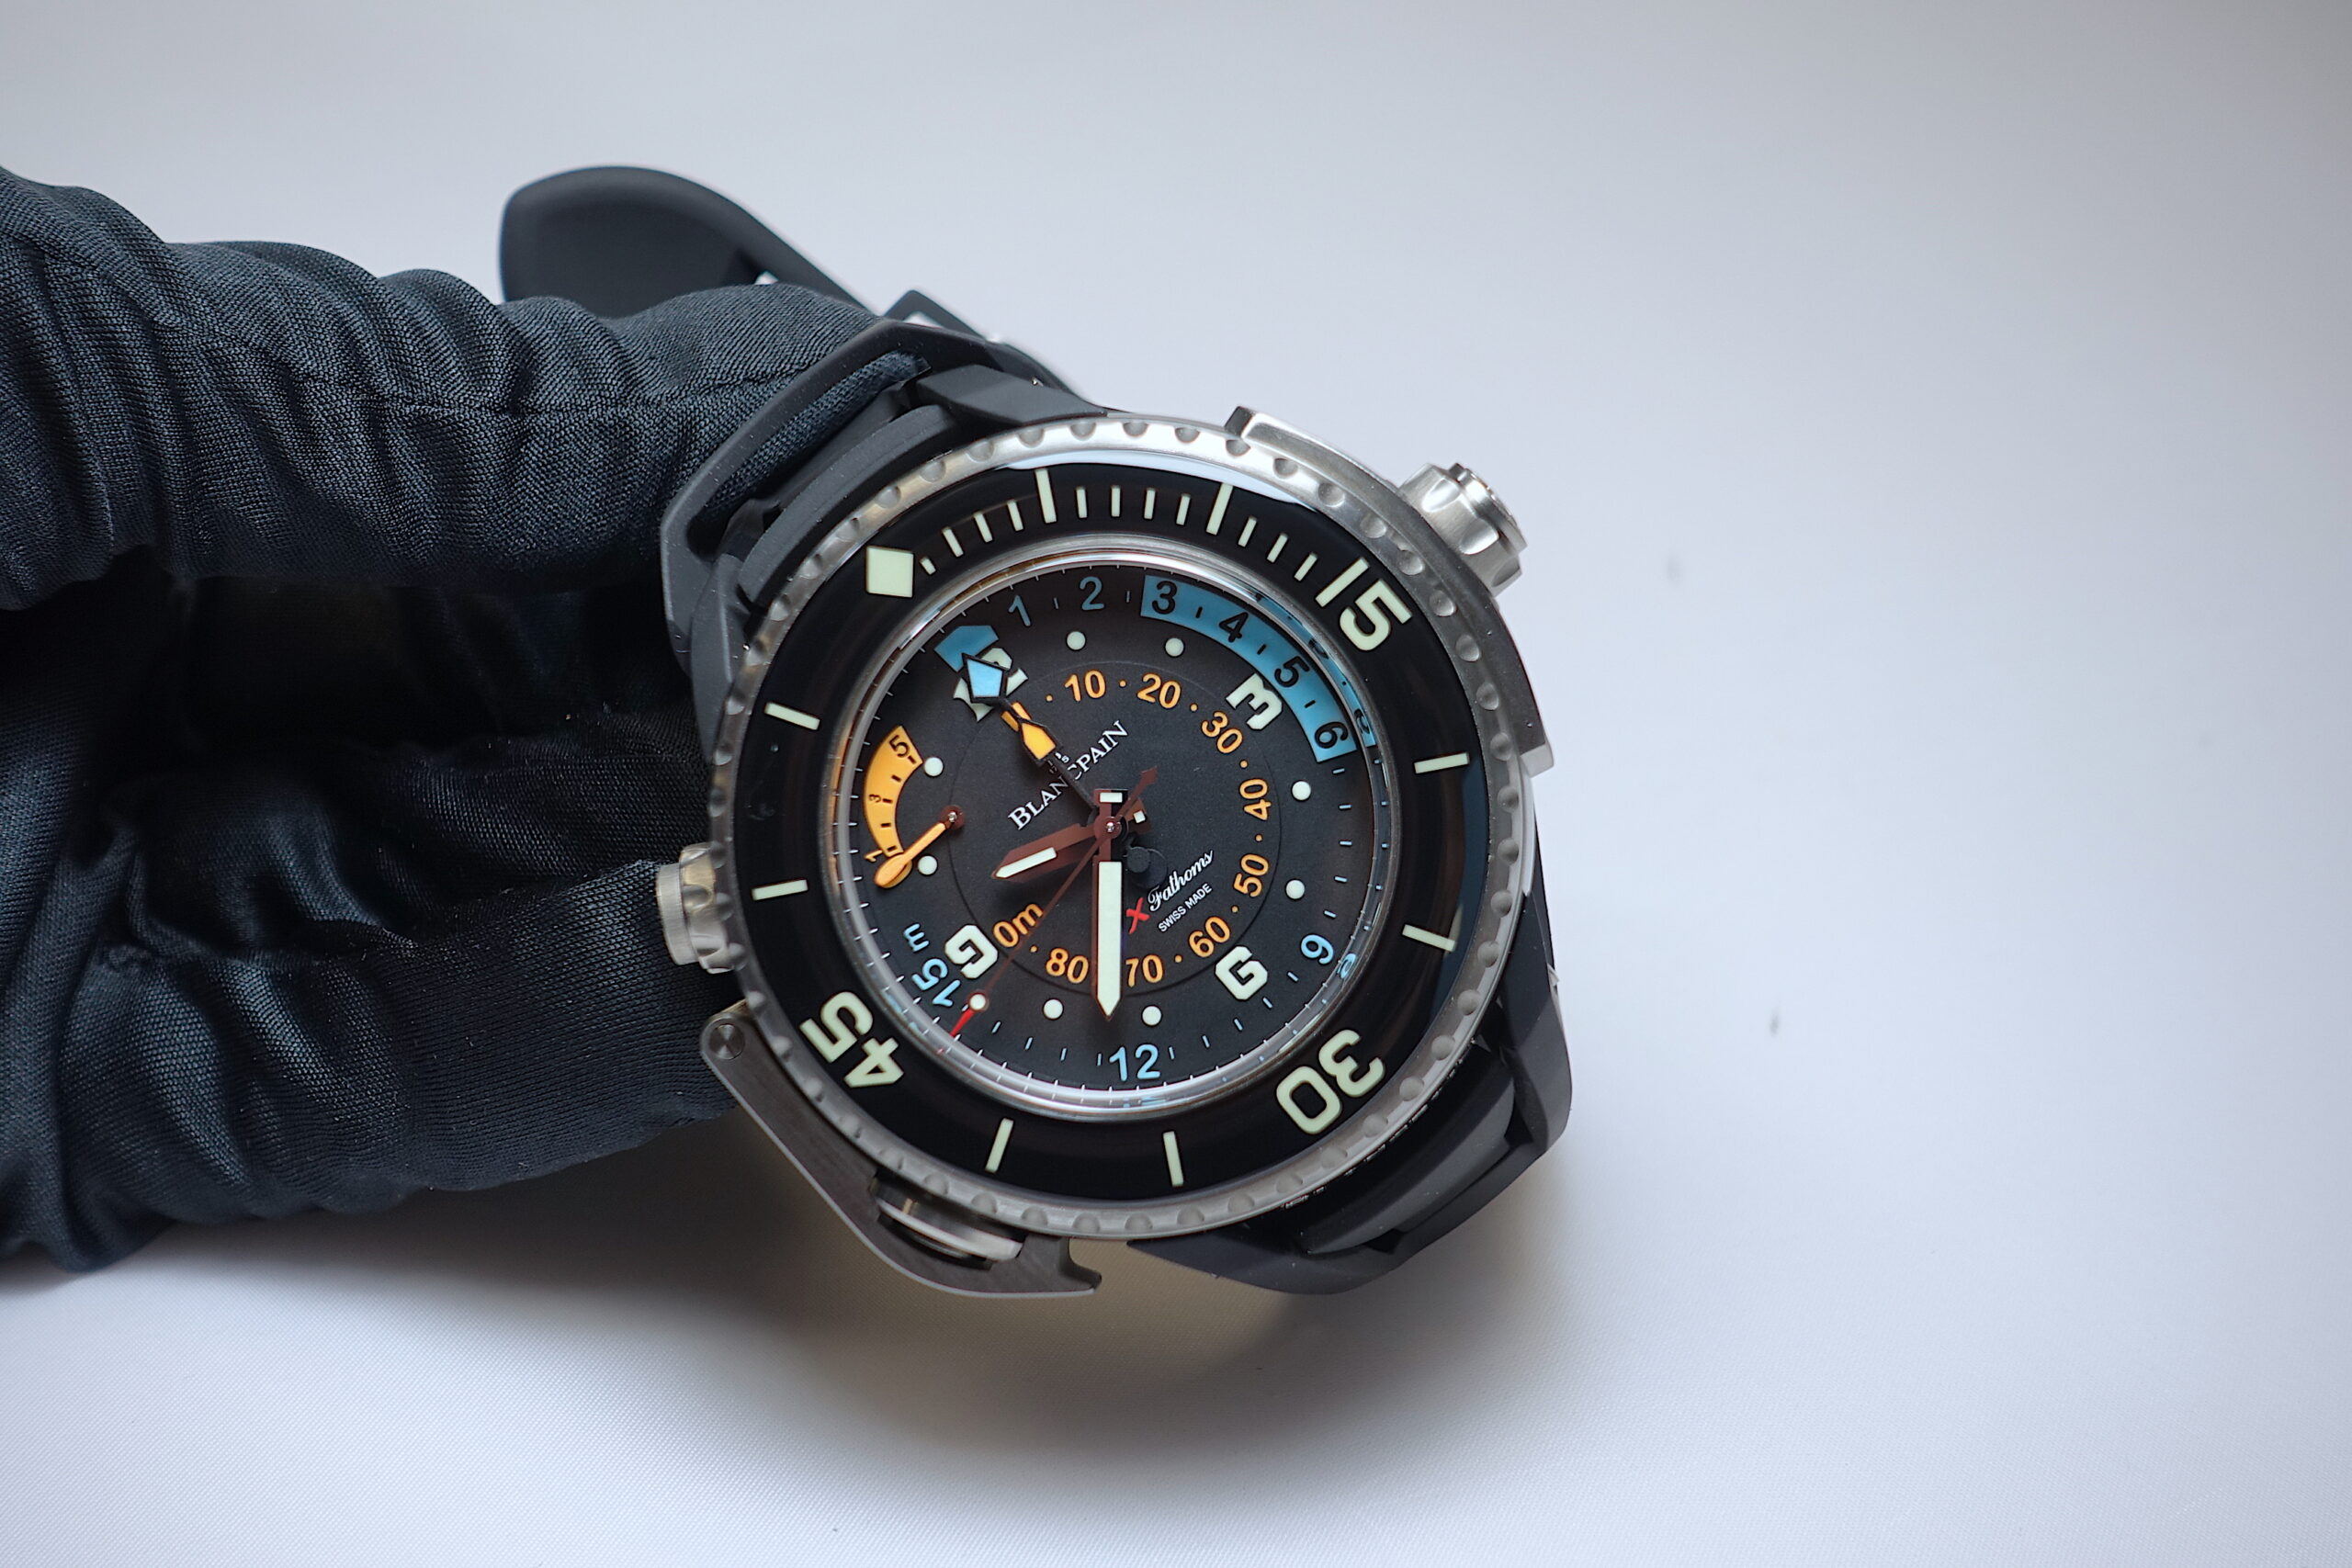 Blancpain X Fathoms - live taken pictures